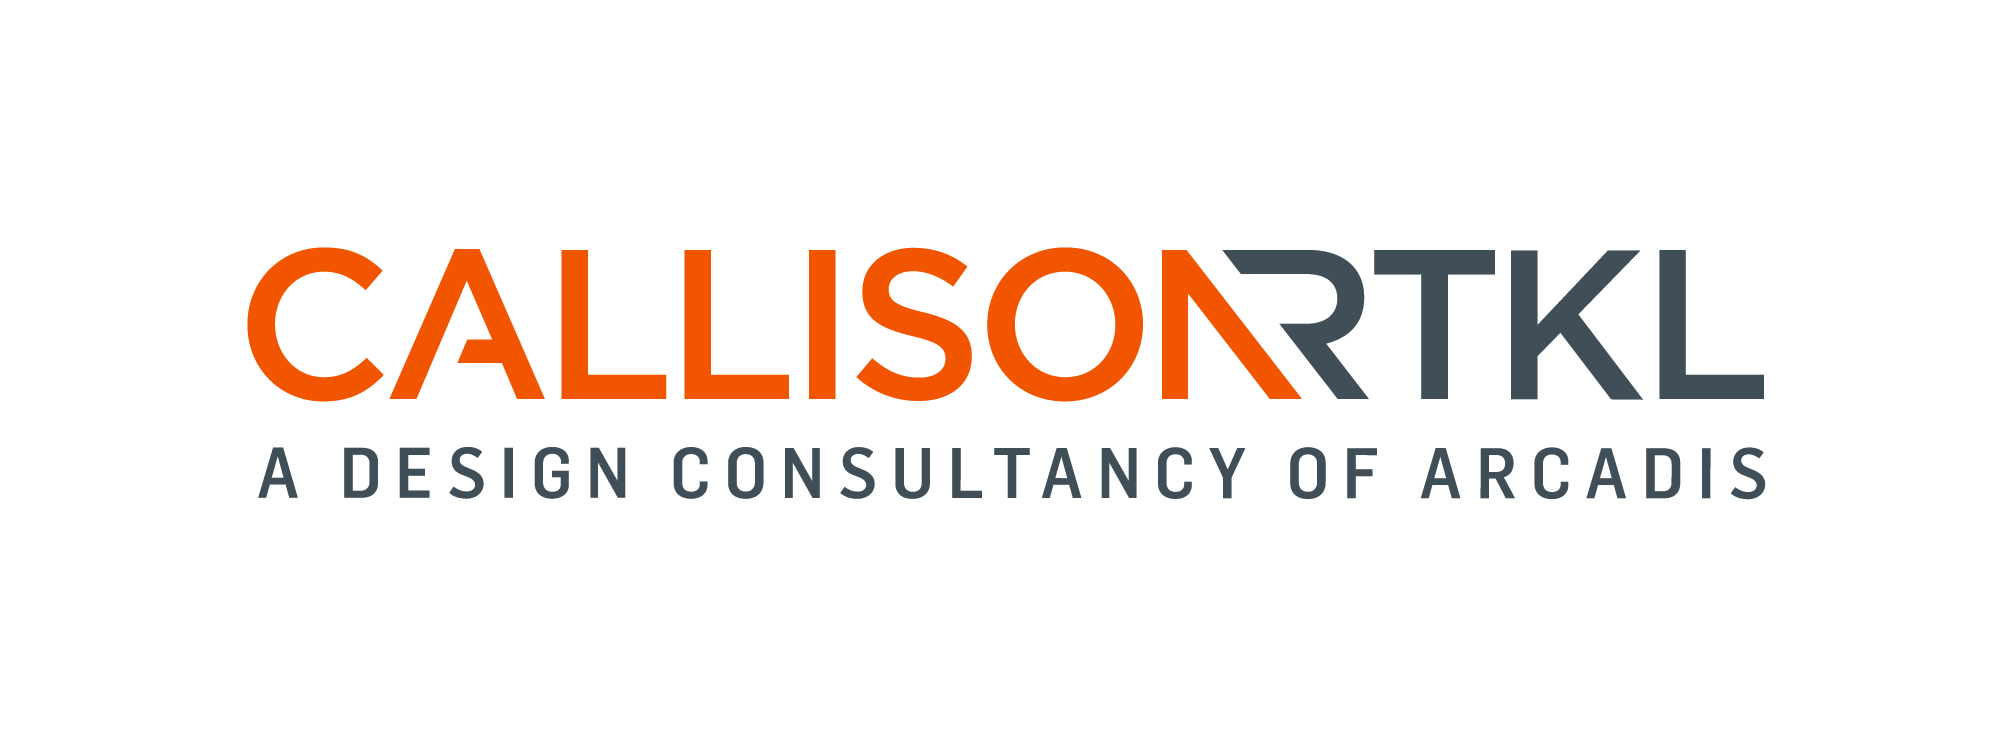 In collaboration with the international callisonrtkl dma for Global design consultancy